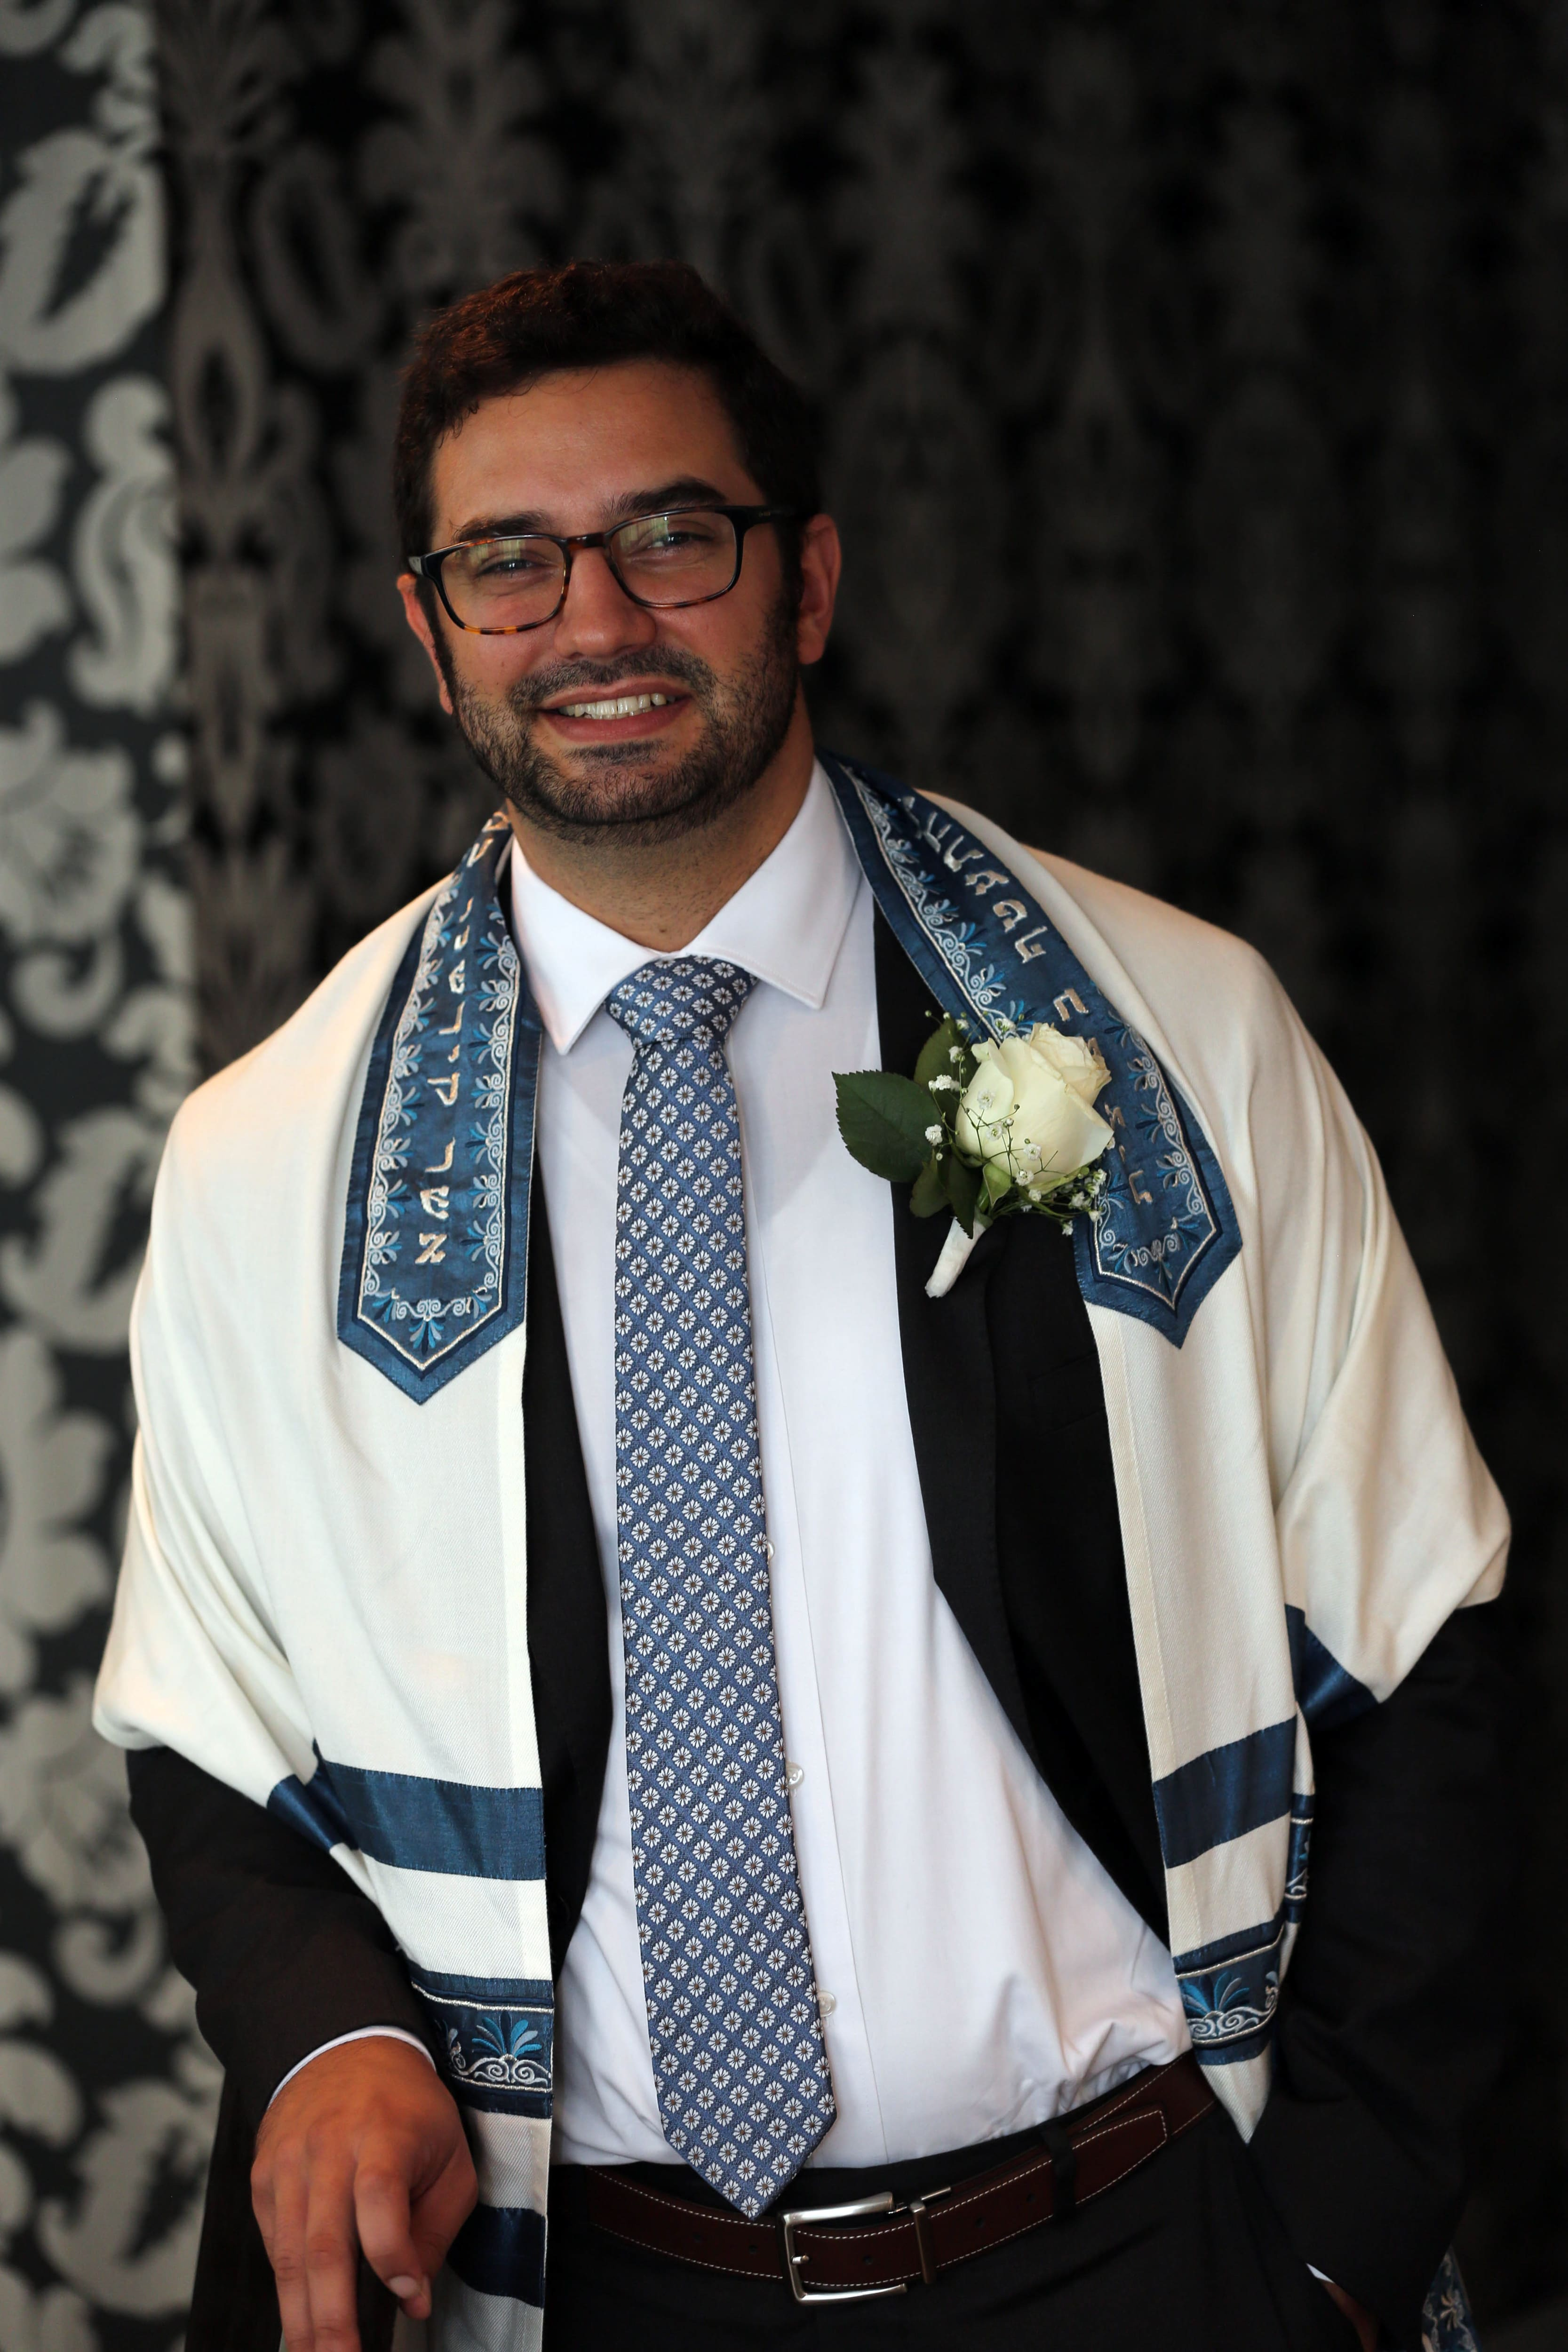 Image of groom posing prior to his Jewish wedding ceremony in Uptown Charlotte North Carolina